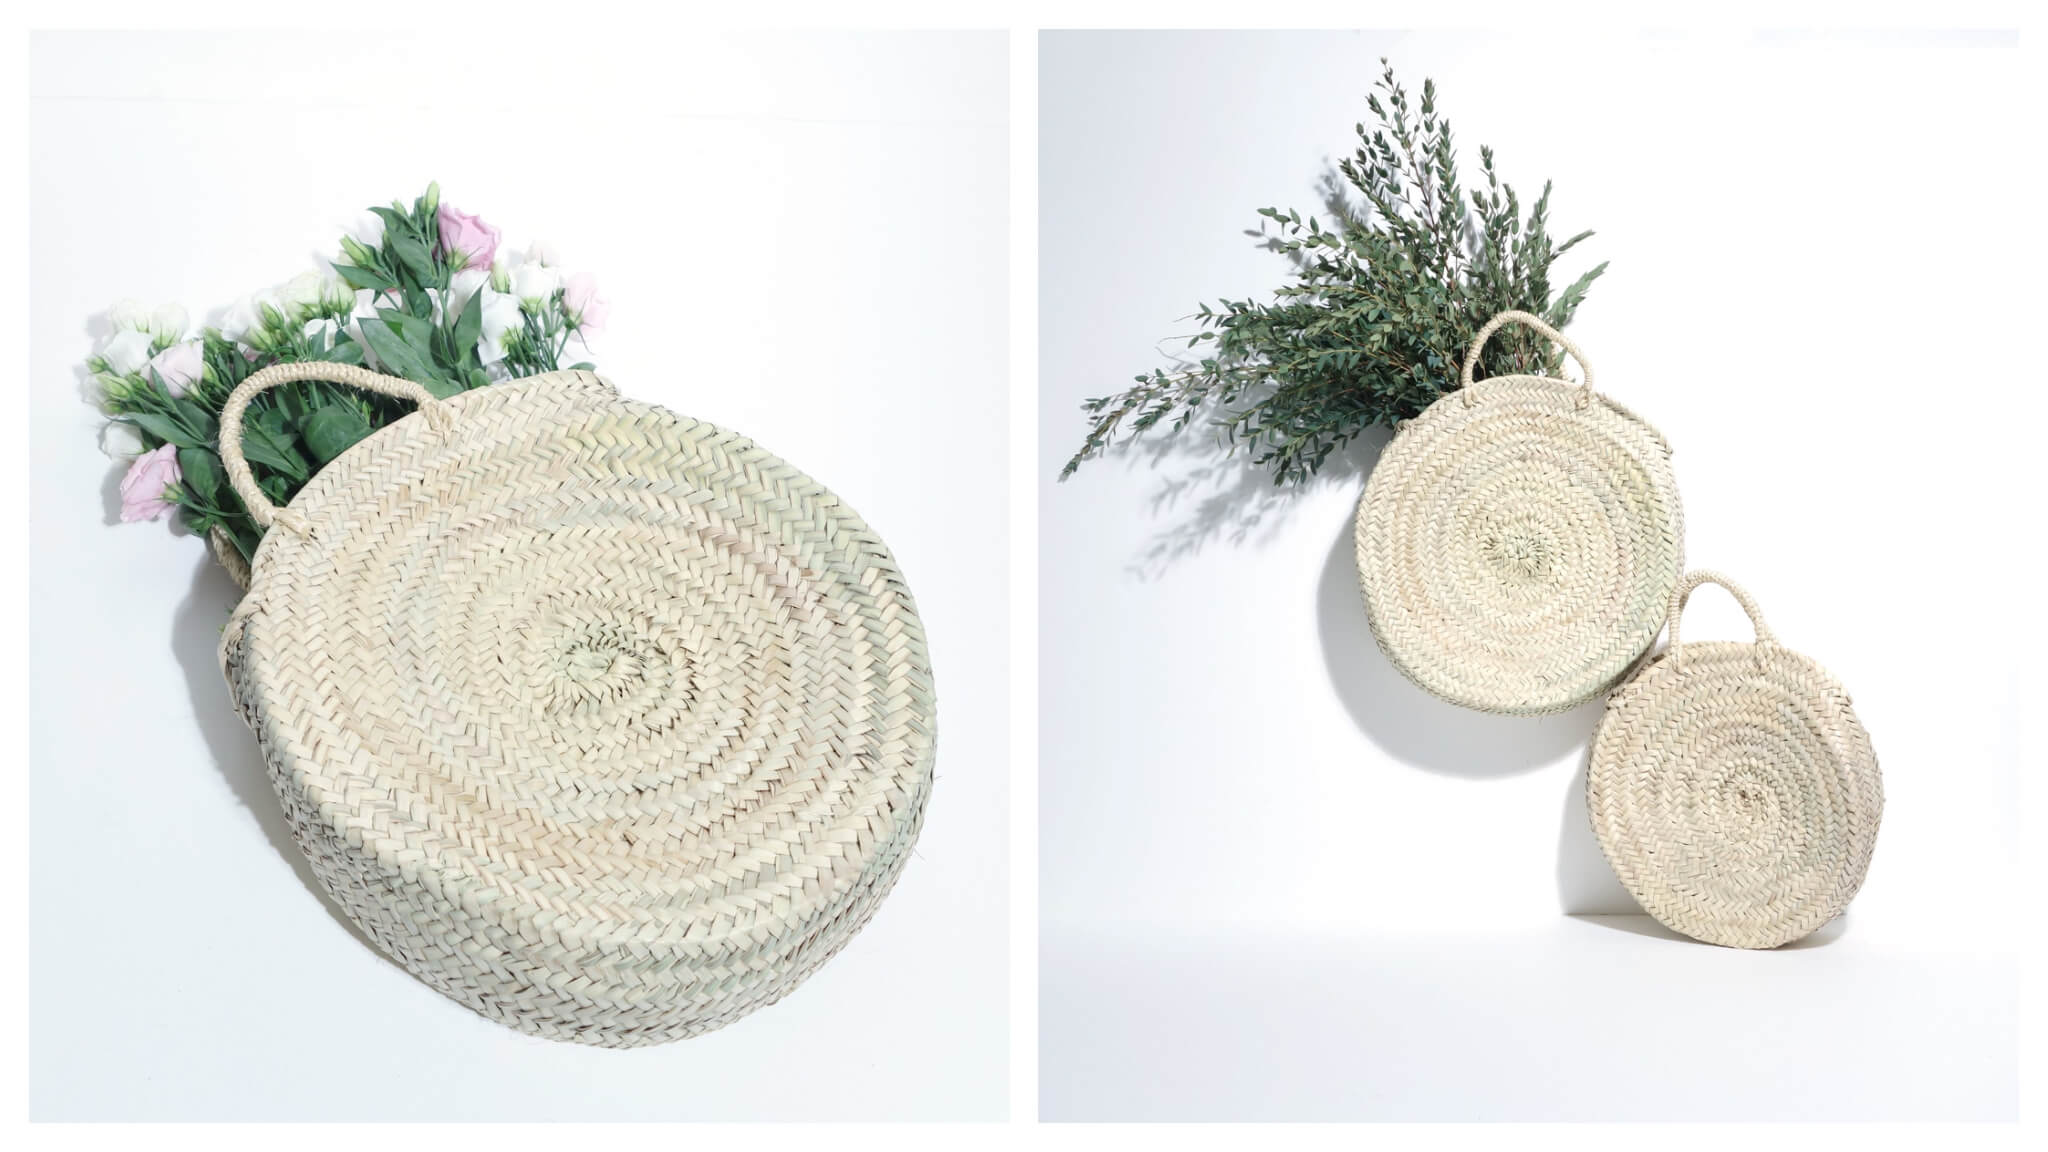 Left: A circular wicker handbag with small straps from the brand Sook Paris sits on a white surface. Pink and white flowers can be seen peaking out of the bag. Right: Two circular wicker handbags from Sook Paris are stacked atop each other, the one on top filled with flowers and greenery.